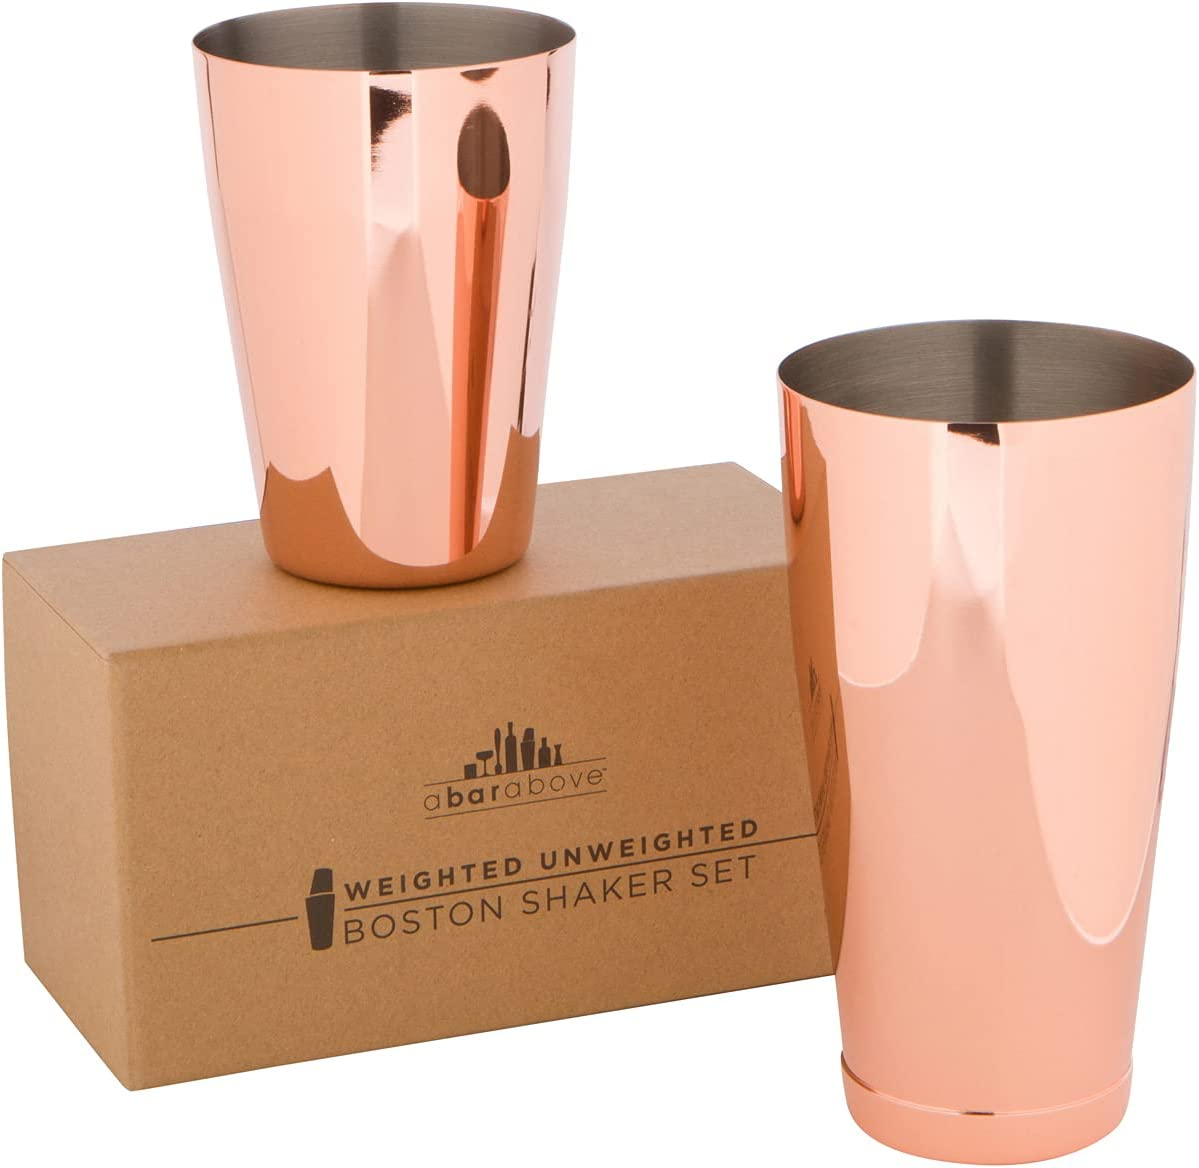 Copper Boston Shaker Set: Two-Piece Pro Cocktail Shaker Set. Unweighted 18oz & Weighted 28oz Martini Drink - Copper Finish